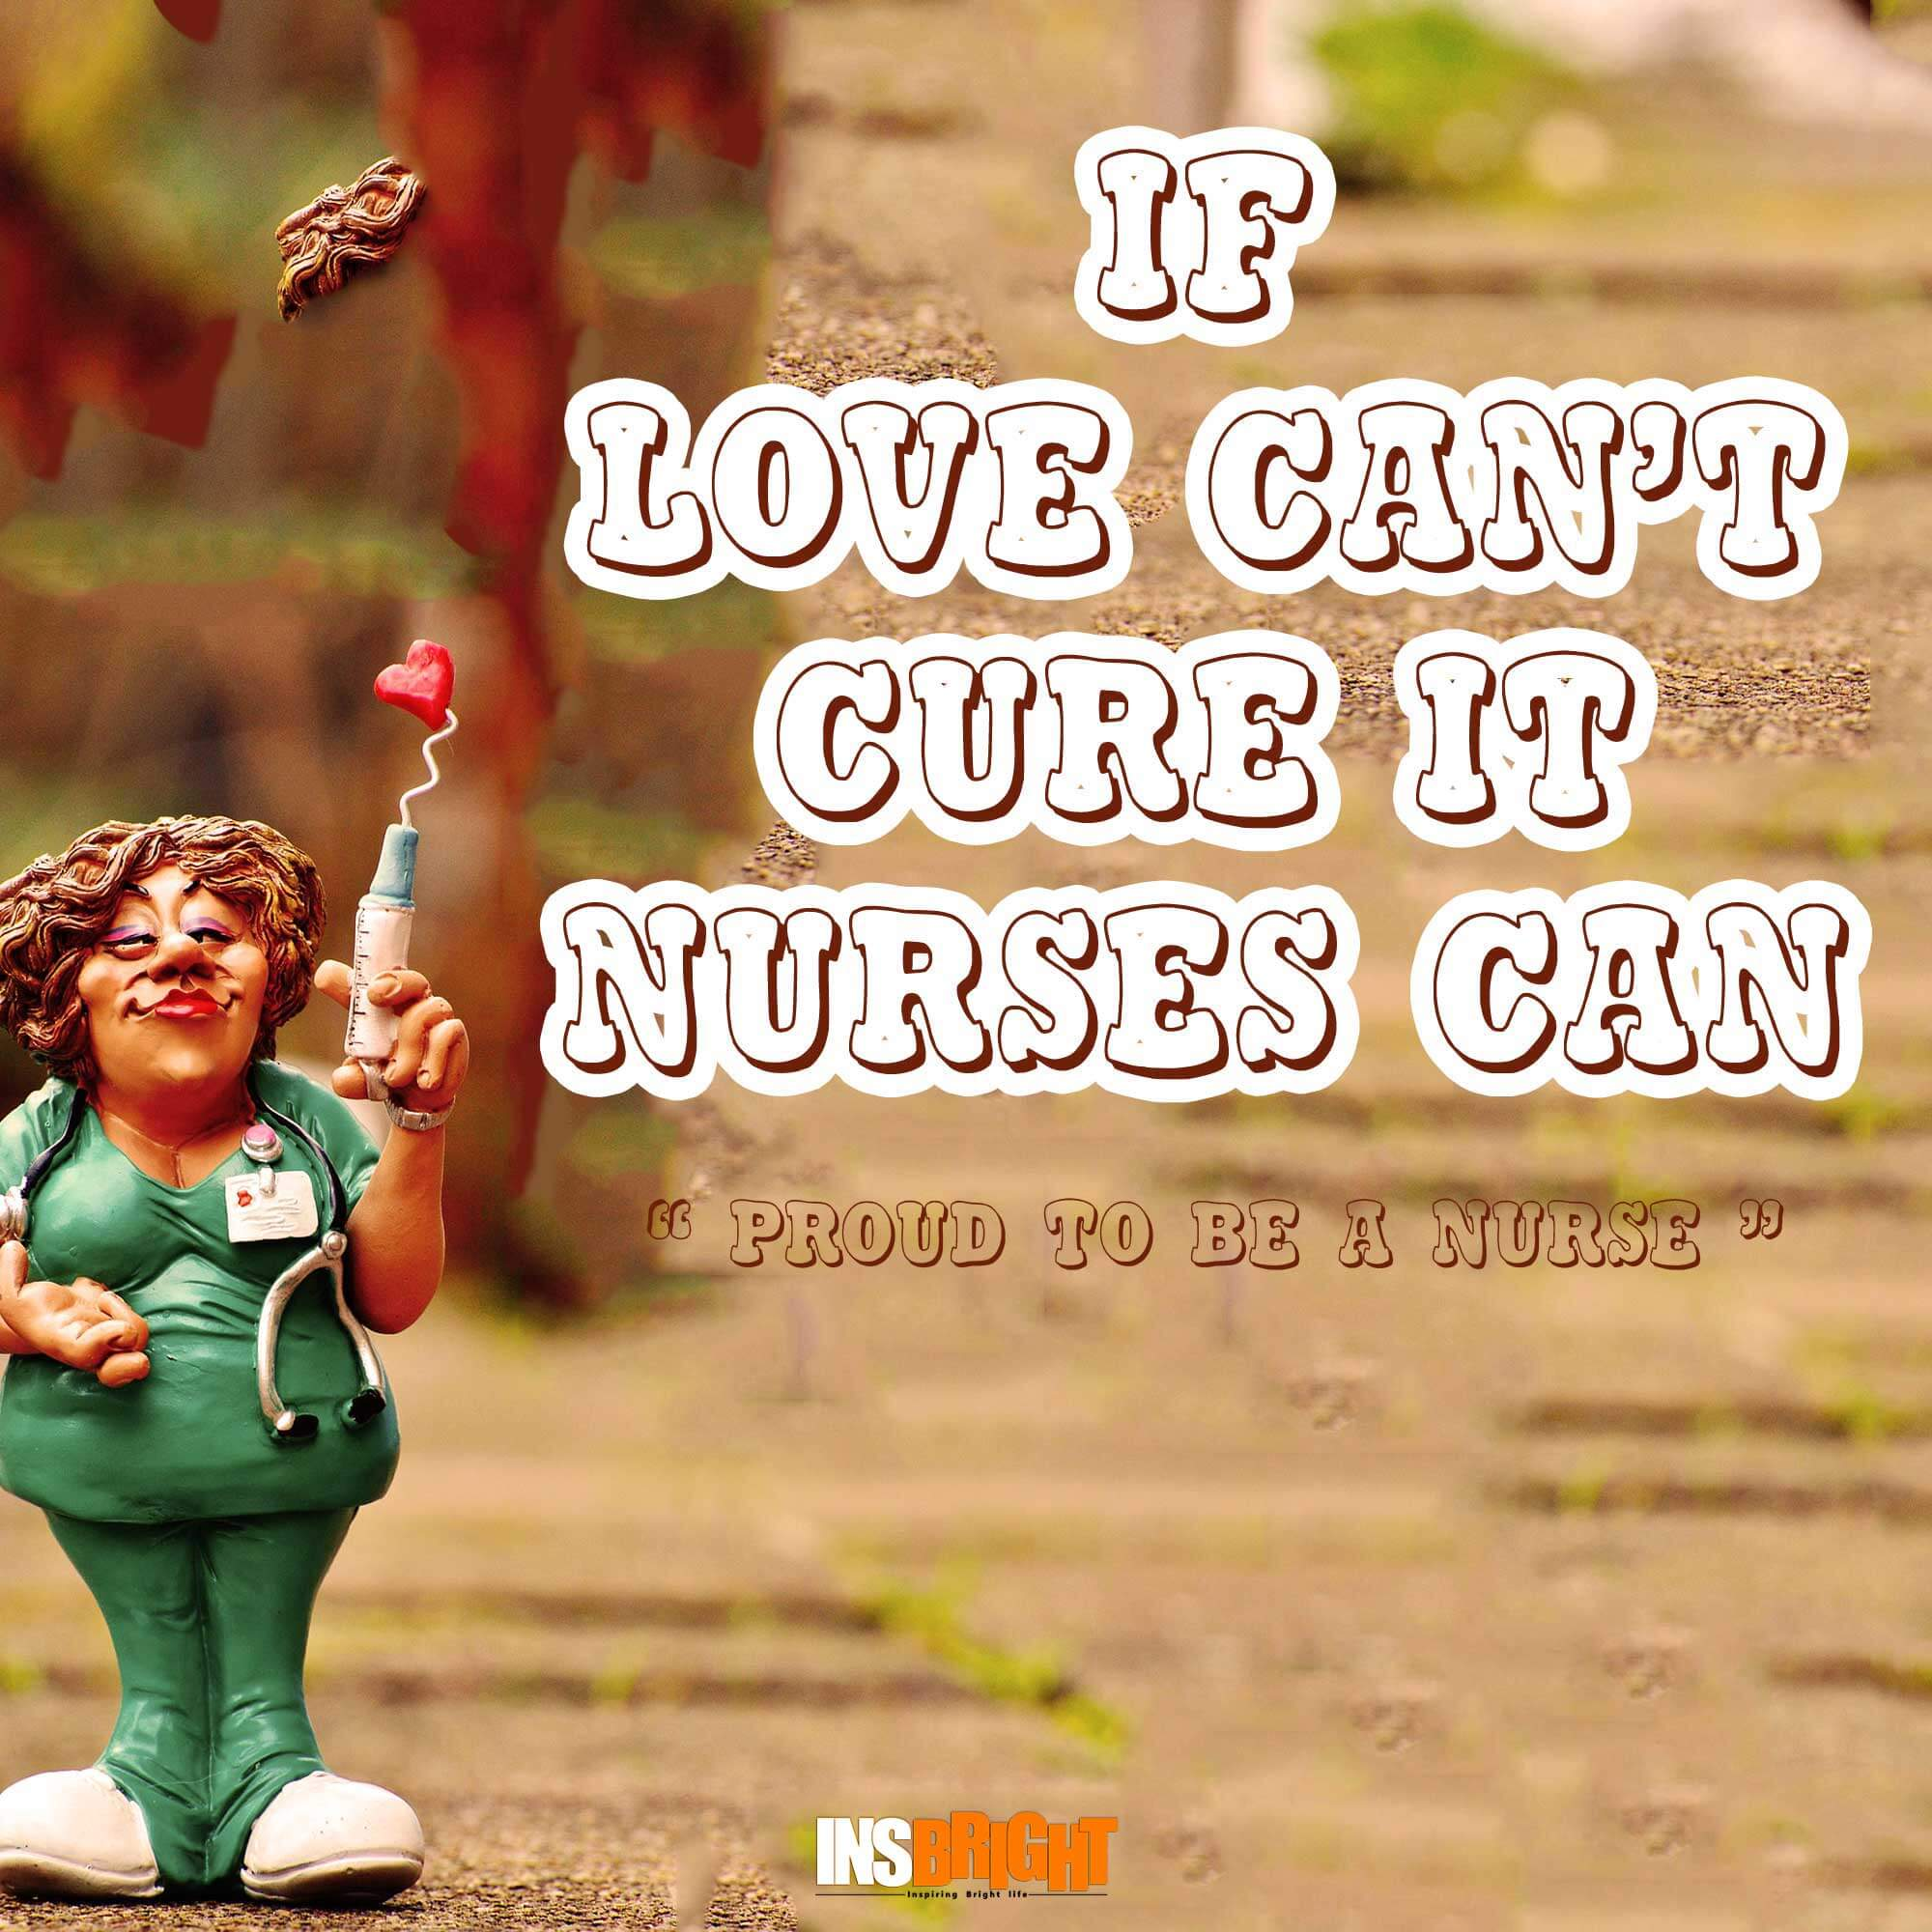 60 Inspirational Nursing Quotes With Images Quotes For Nurses